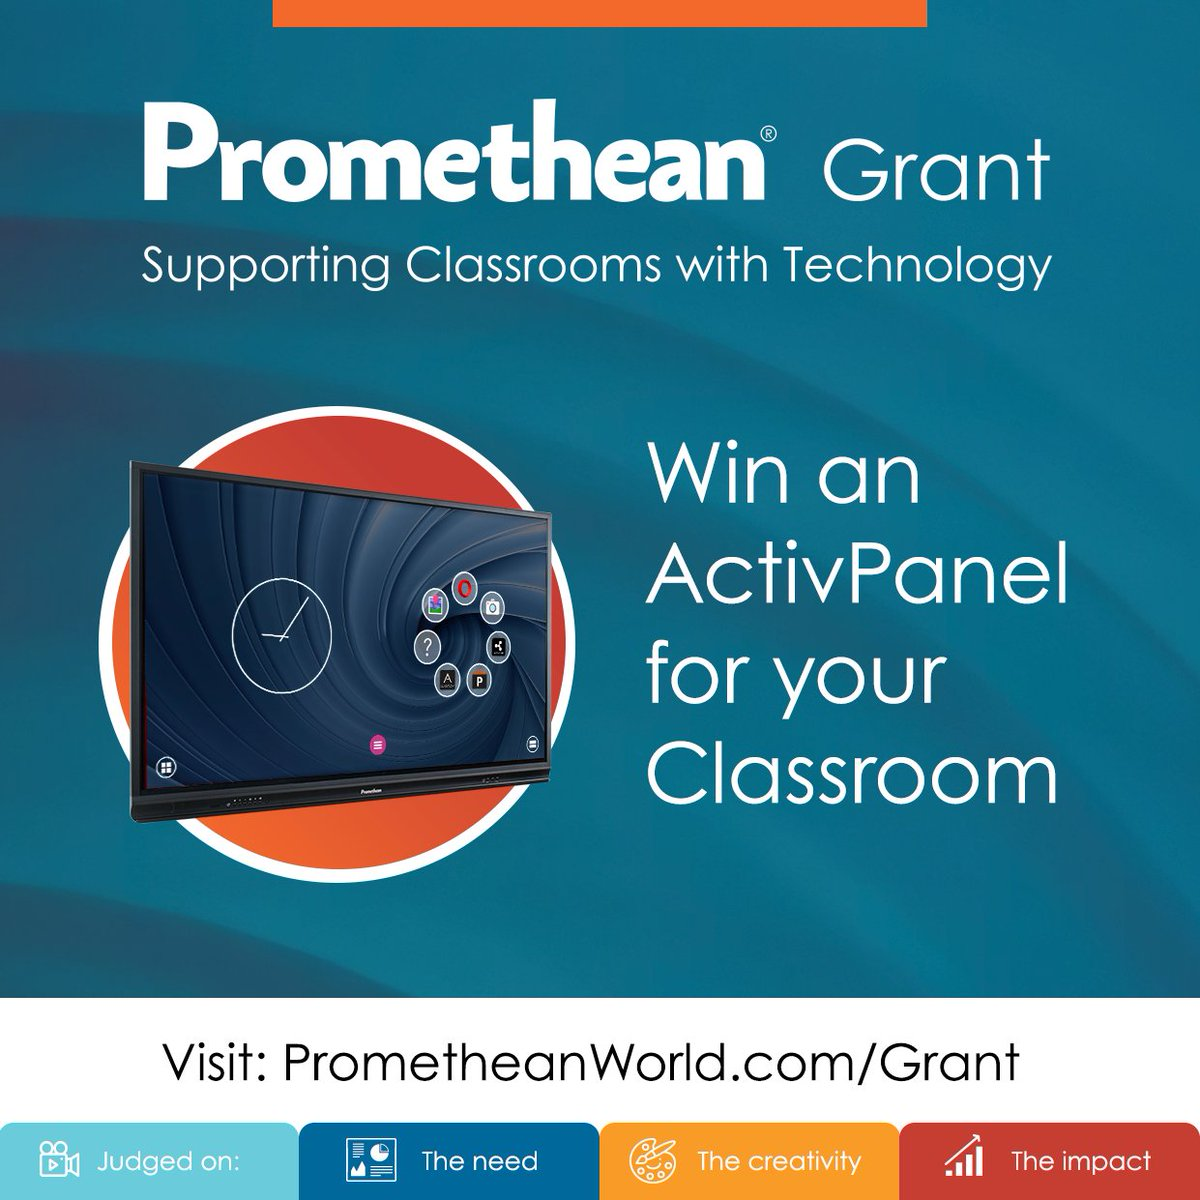 PrometheanGrantUS tagged Tweets and Download Twitter MP4